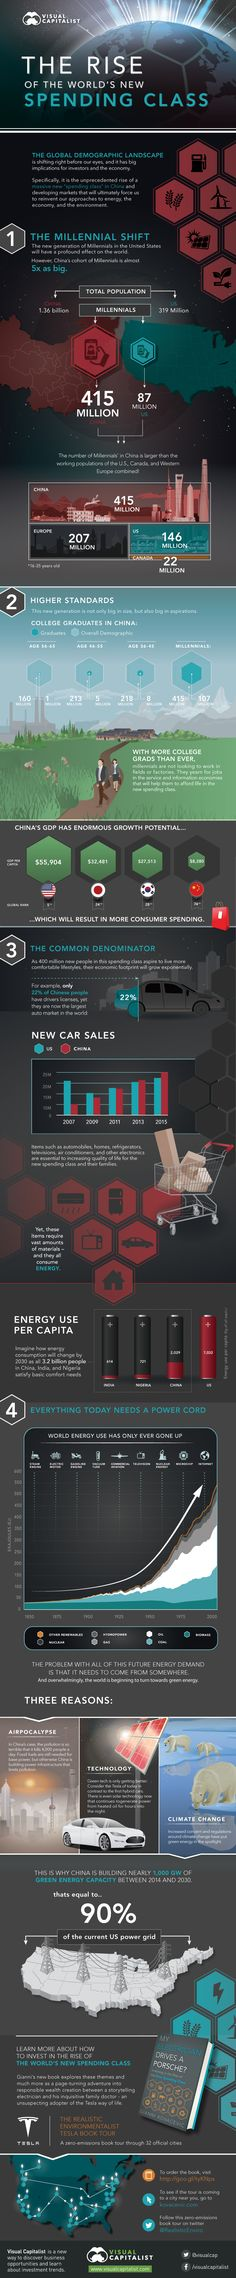 The Rise of the World's New Spending Class #infographic #Marketing #Millennials…